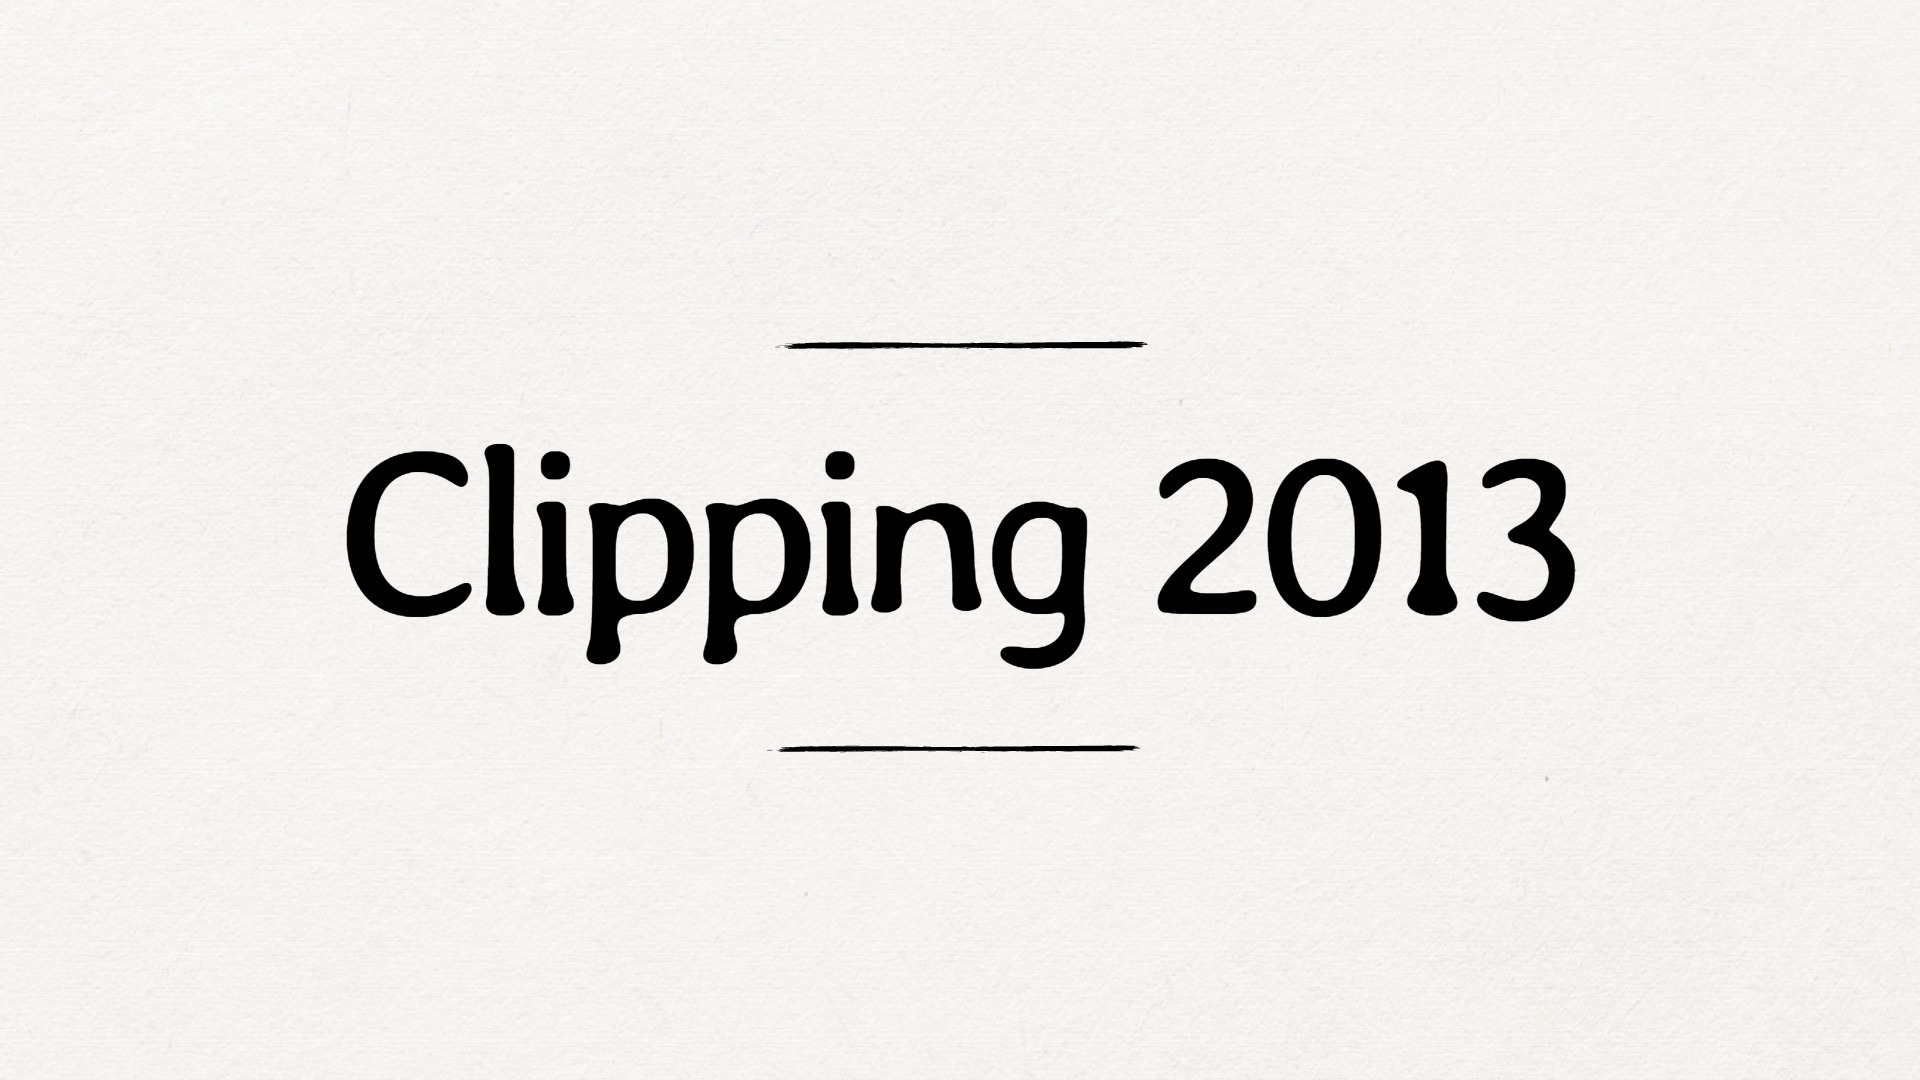 Clipping 2013